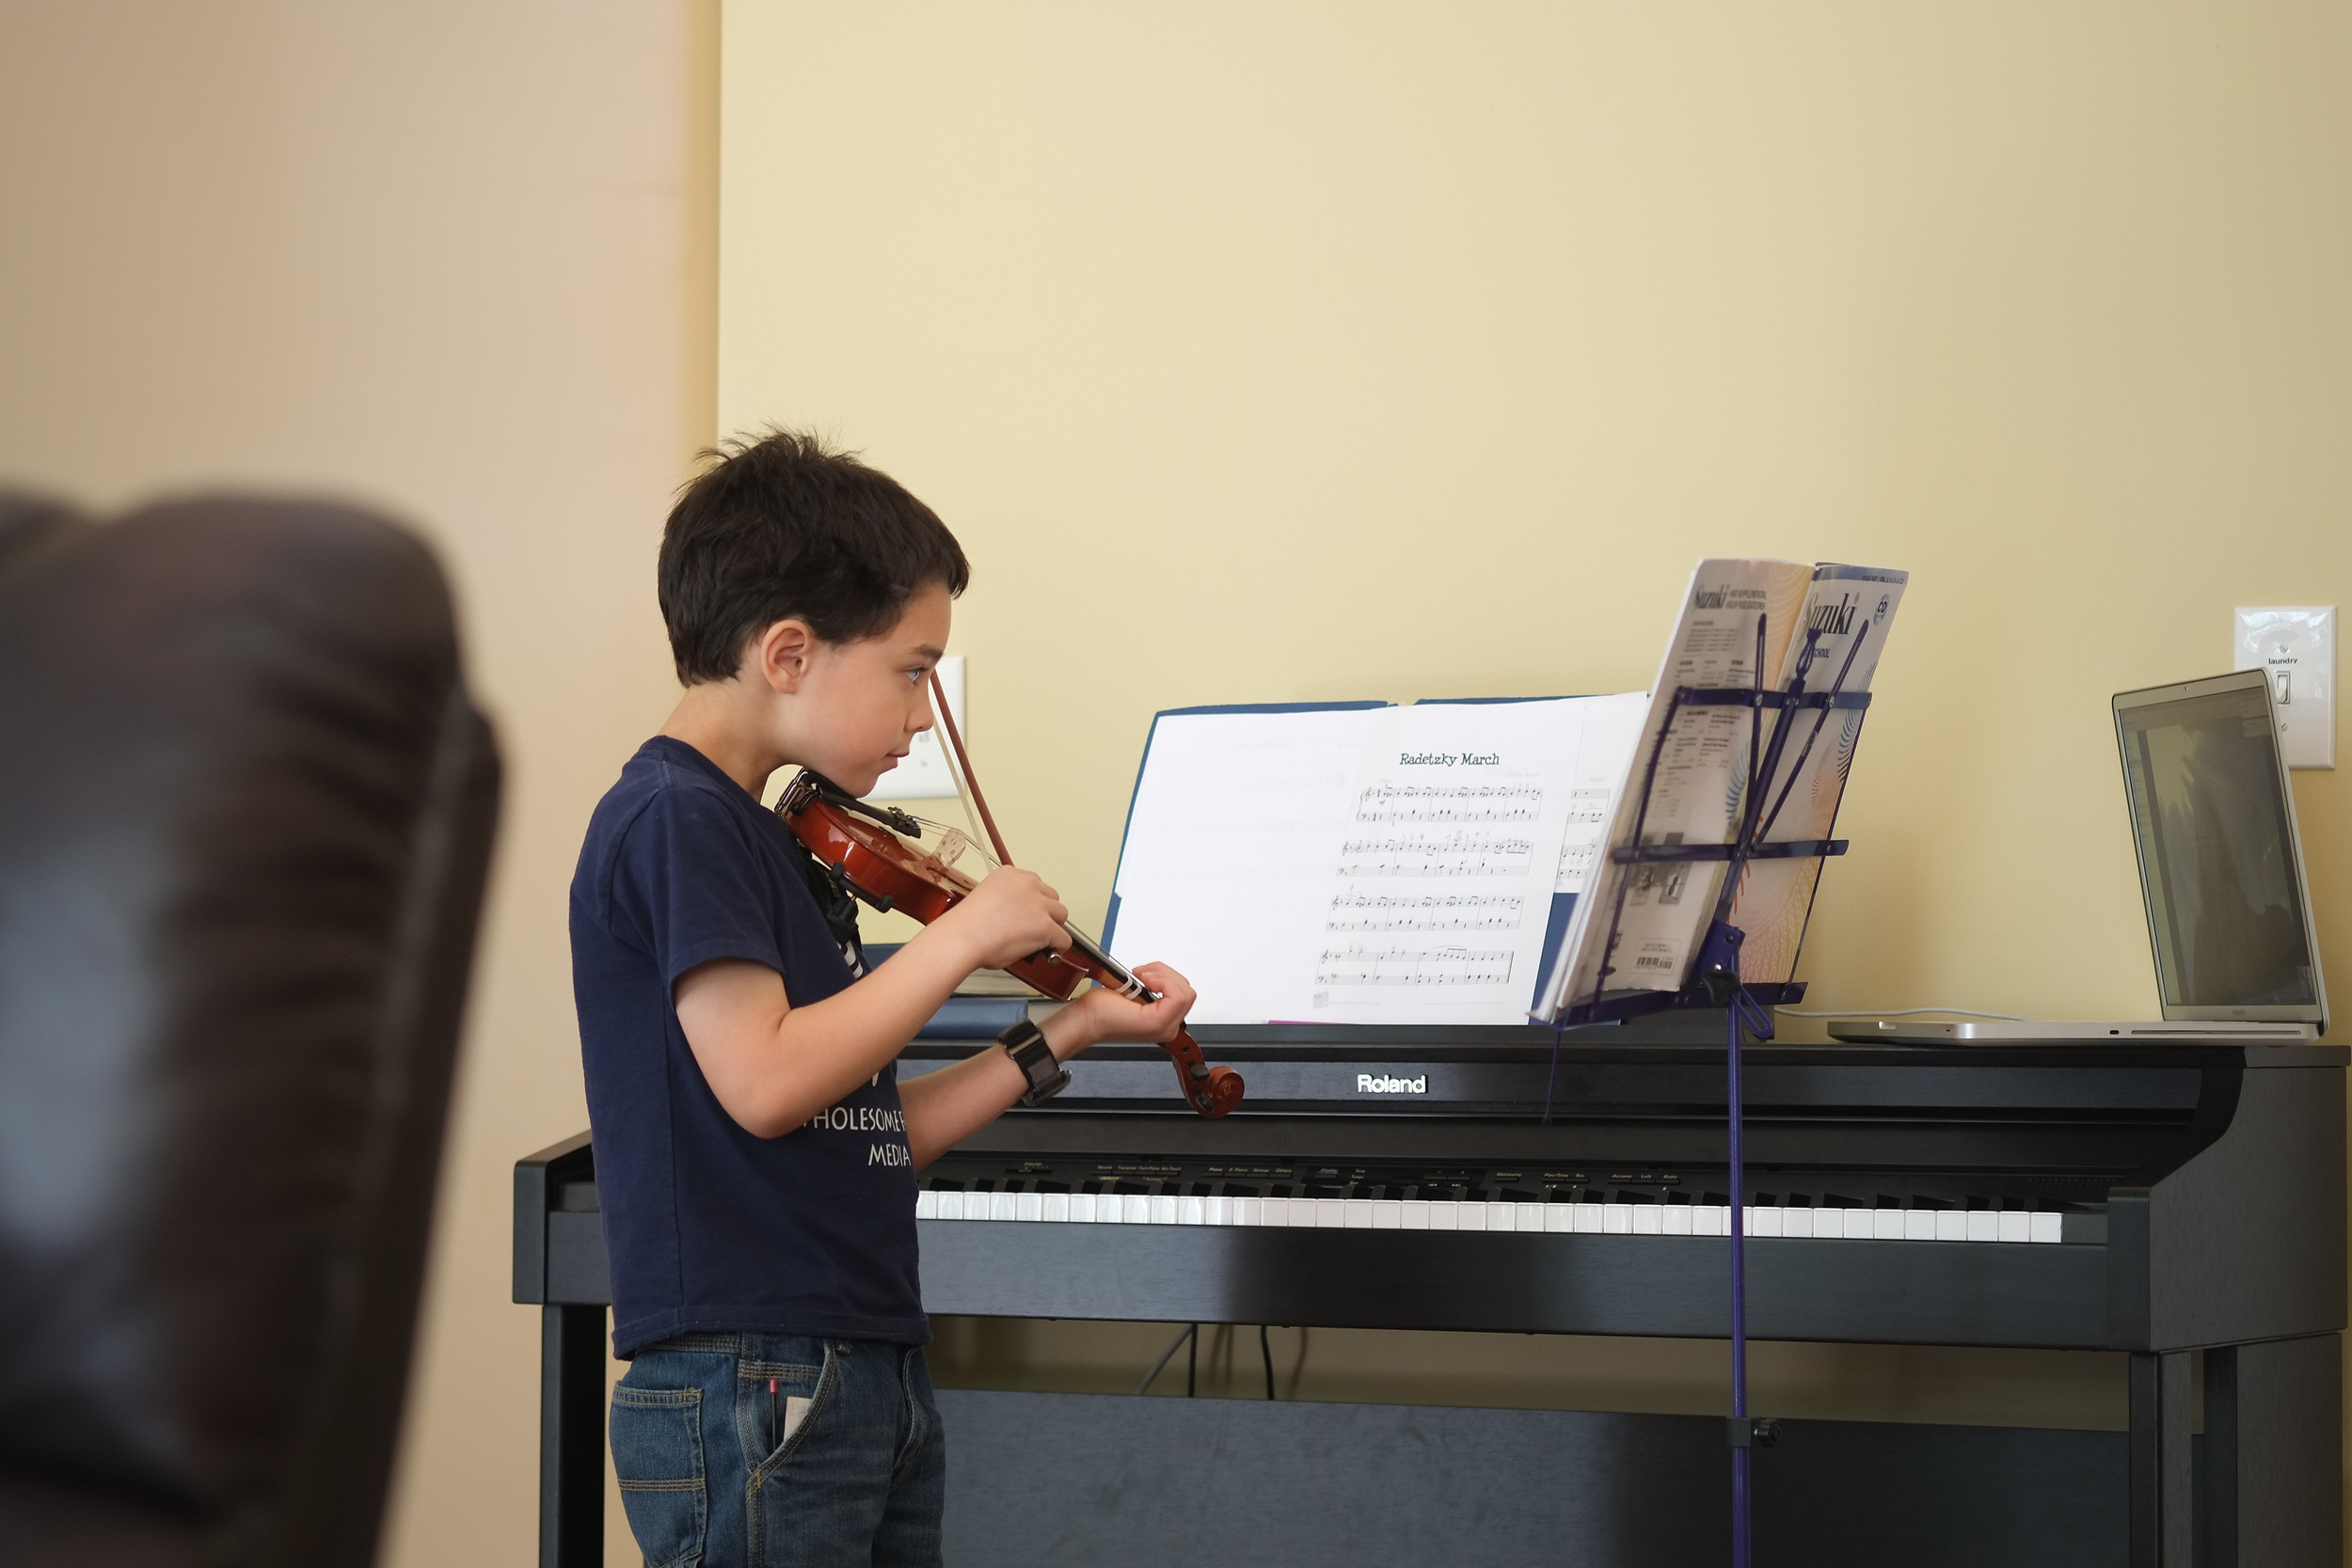 2015 - Abraham focusing on the instructions from his piano and violin instructor. When we moved, we transferred from private home lessons to using Skype with the same instructor. He is still a very diligent and patient student.